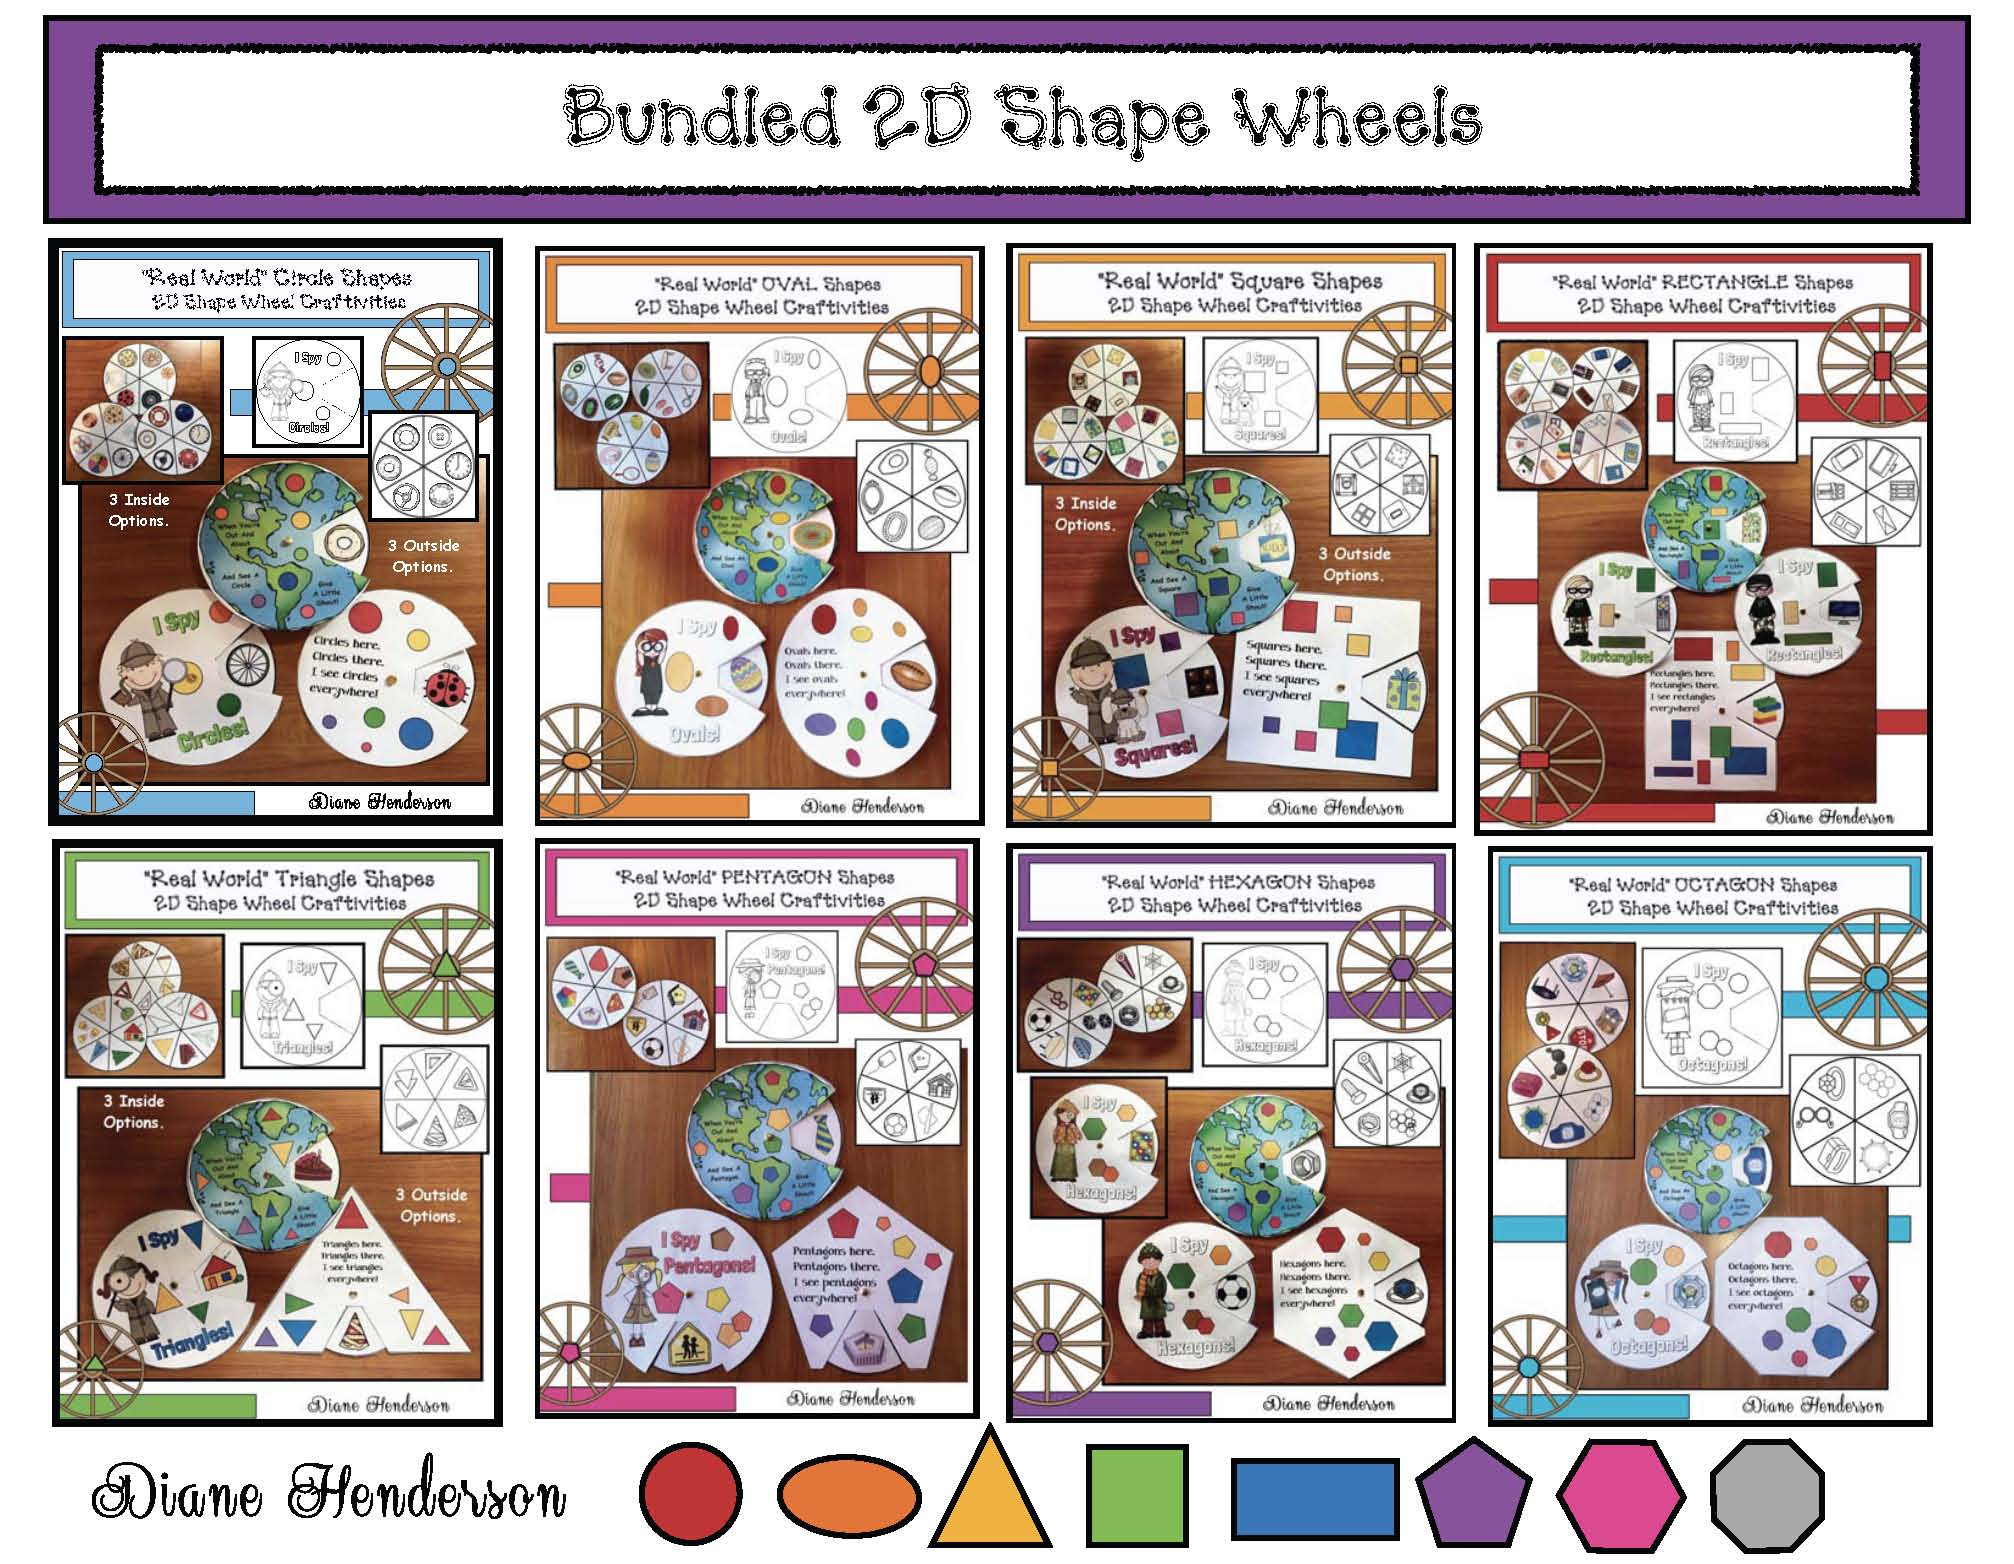 2D shape activities, 2D shape crafts, 2D shape games, 2D shape assessments, 2D shape centers, 2D shape wheels, 2D shapes in the real world, examples of 2D shapes